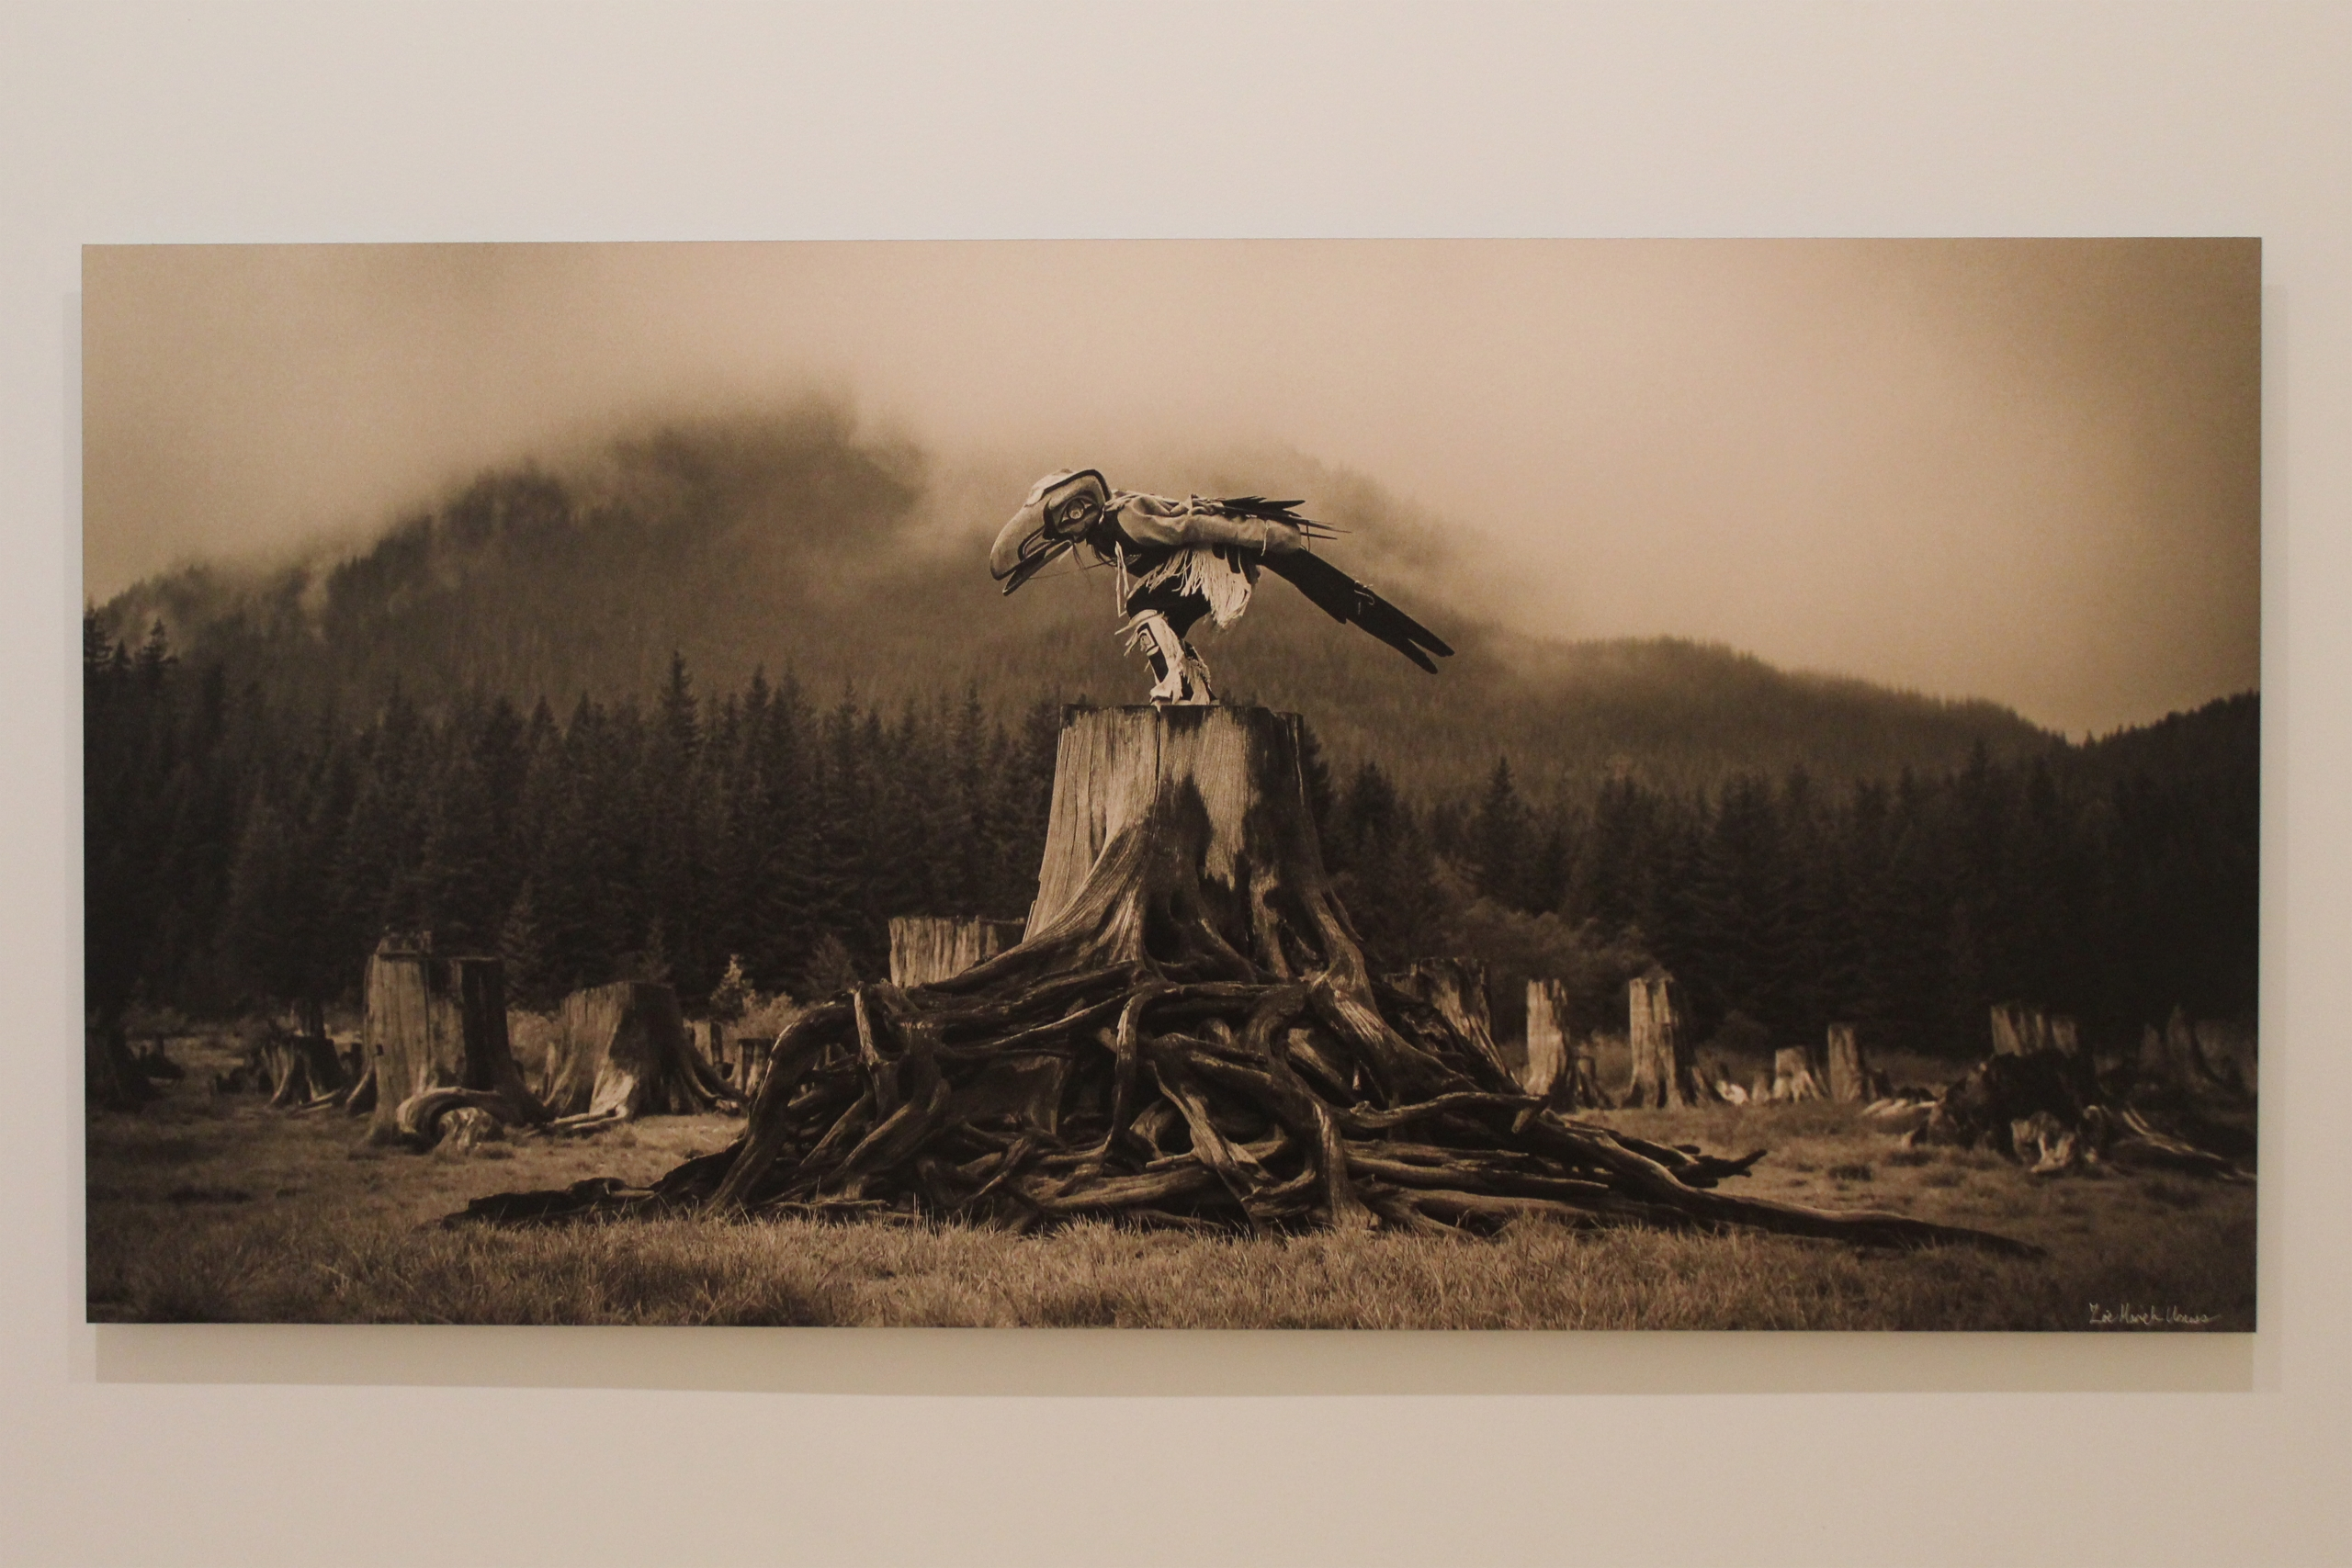 """Recent Acquisitions - Zoë Urness """"Raven Tells His Story in the Fog"""""""